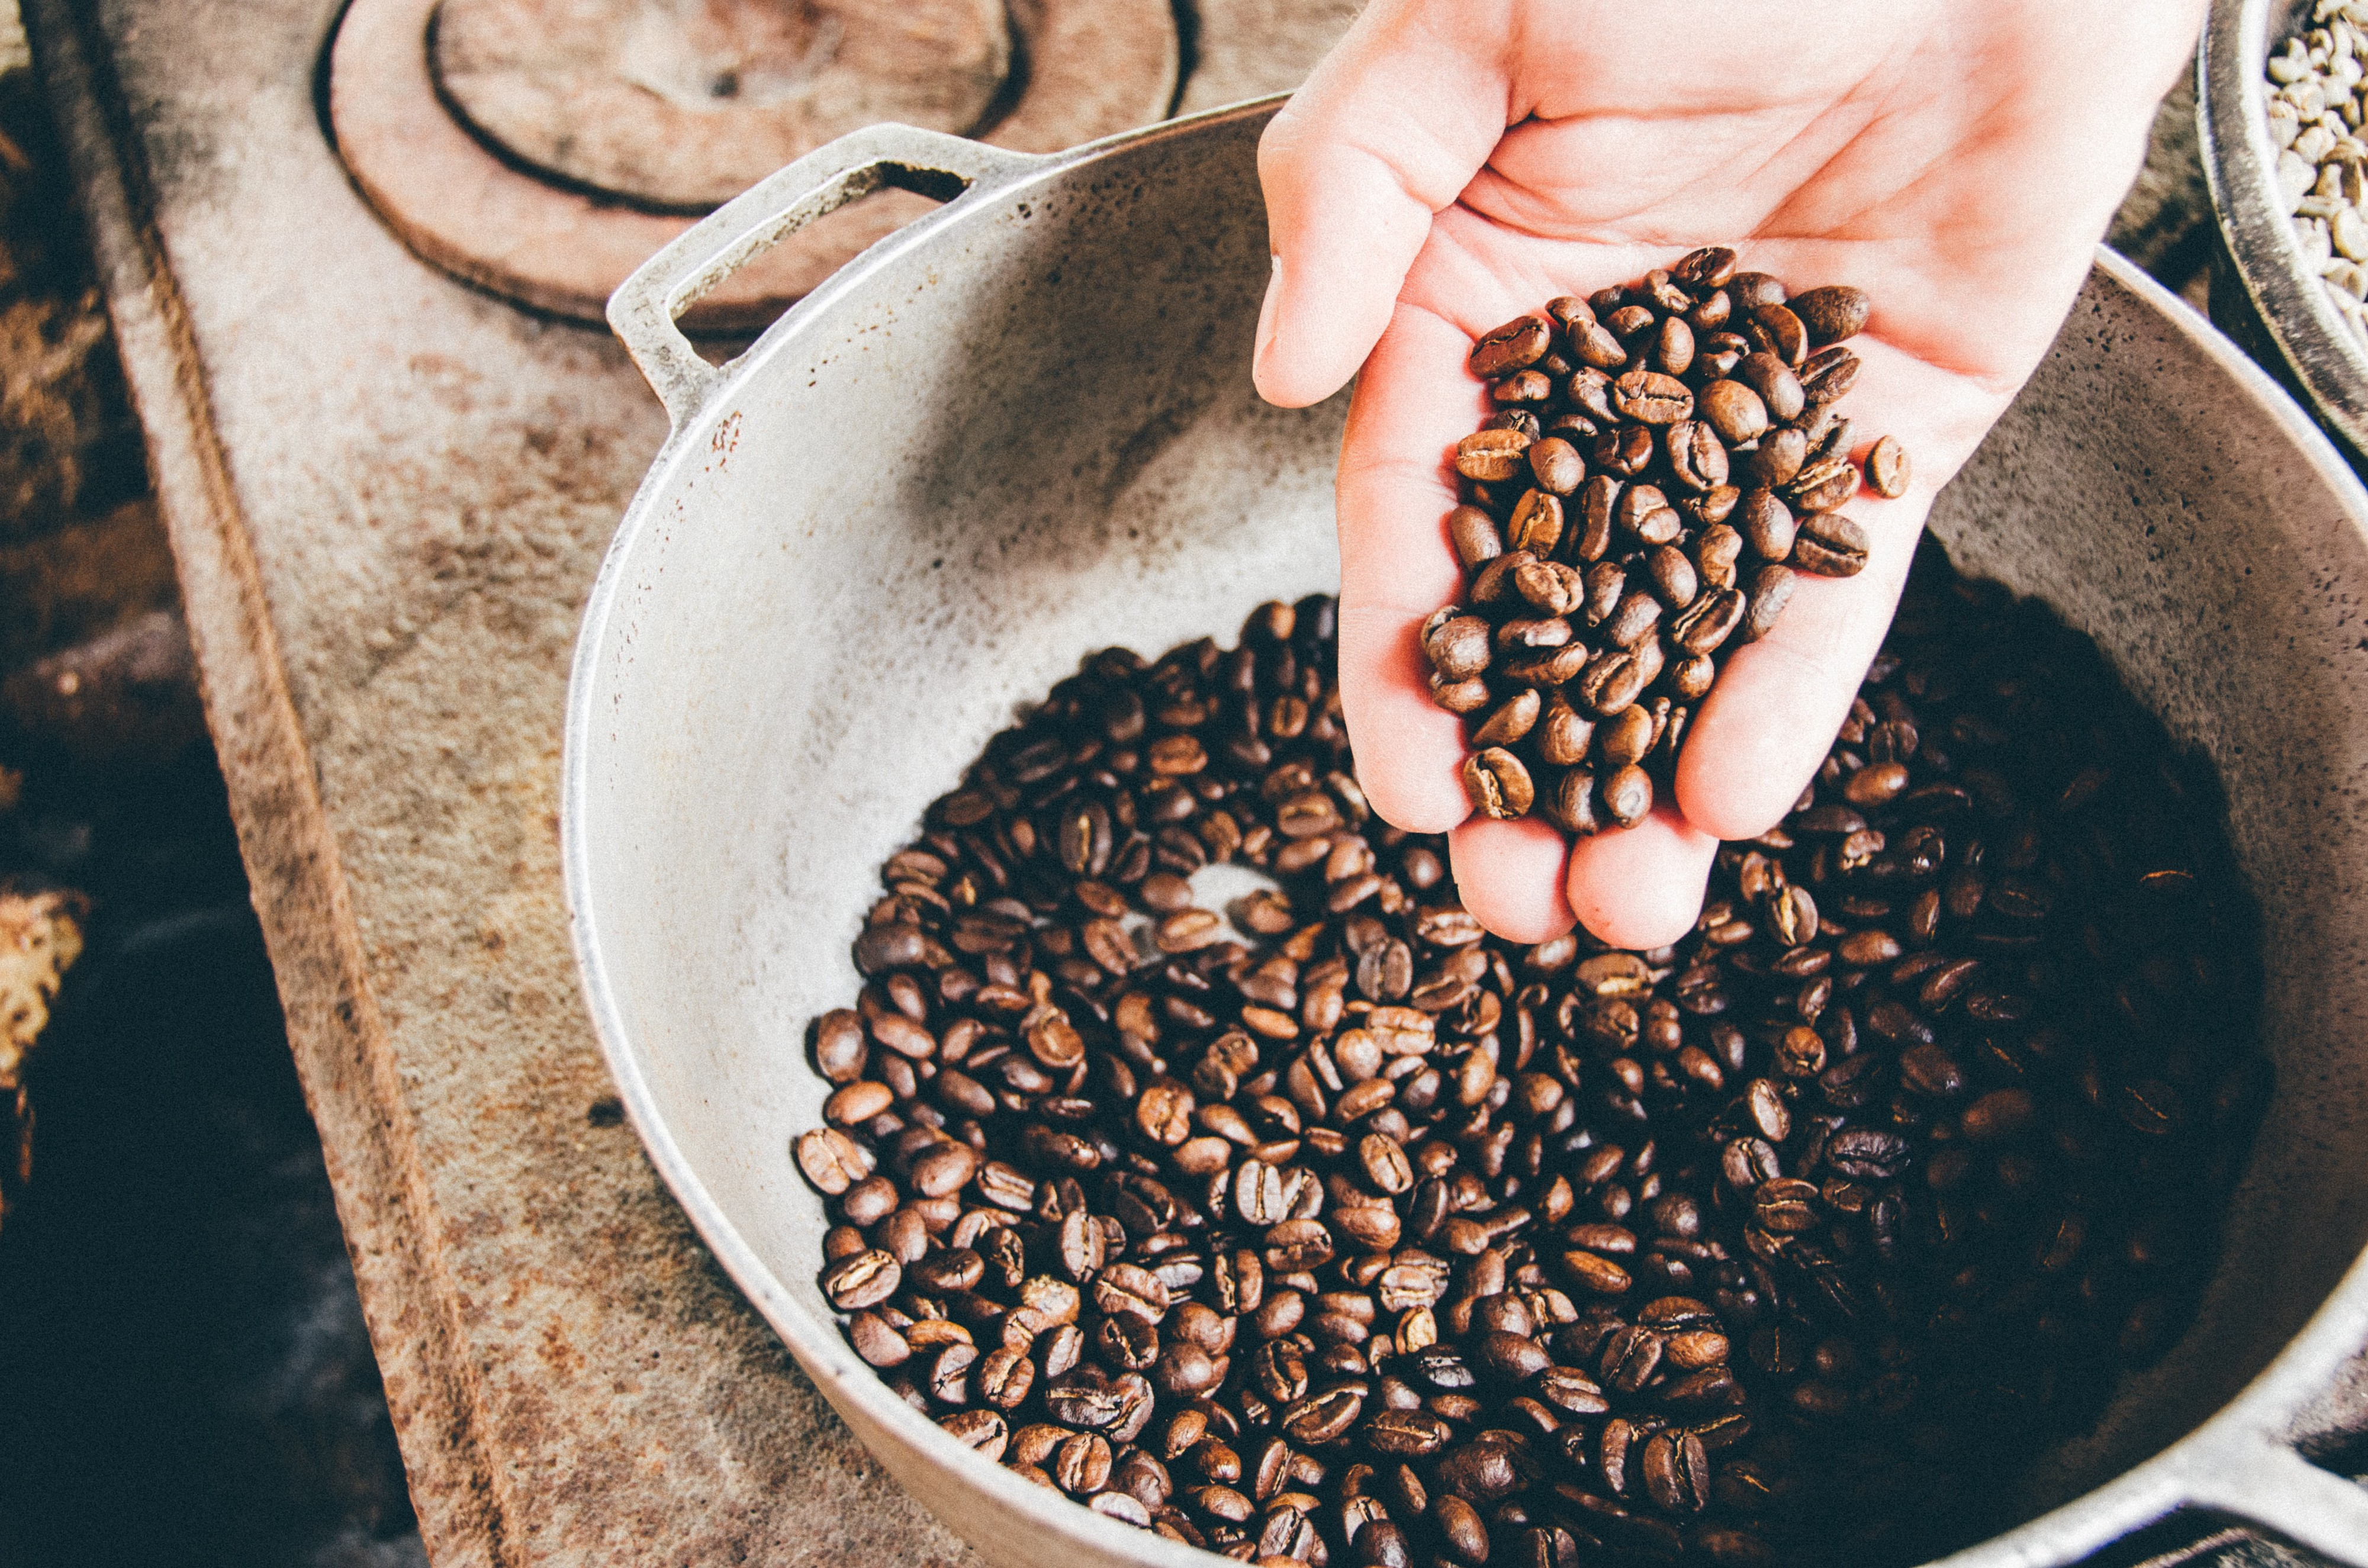 Searching for the perfect coffee: An e-commerce example